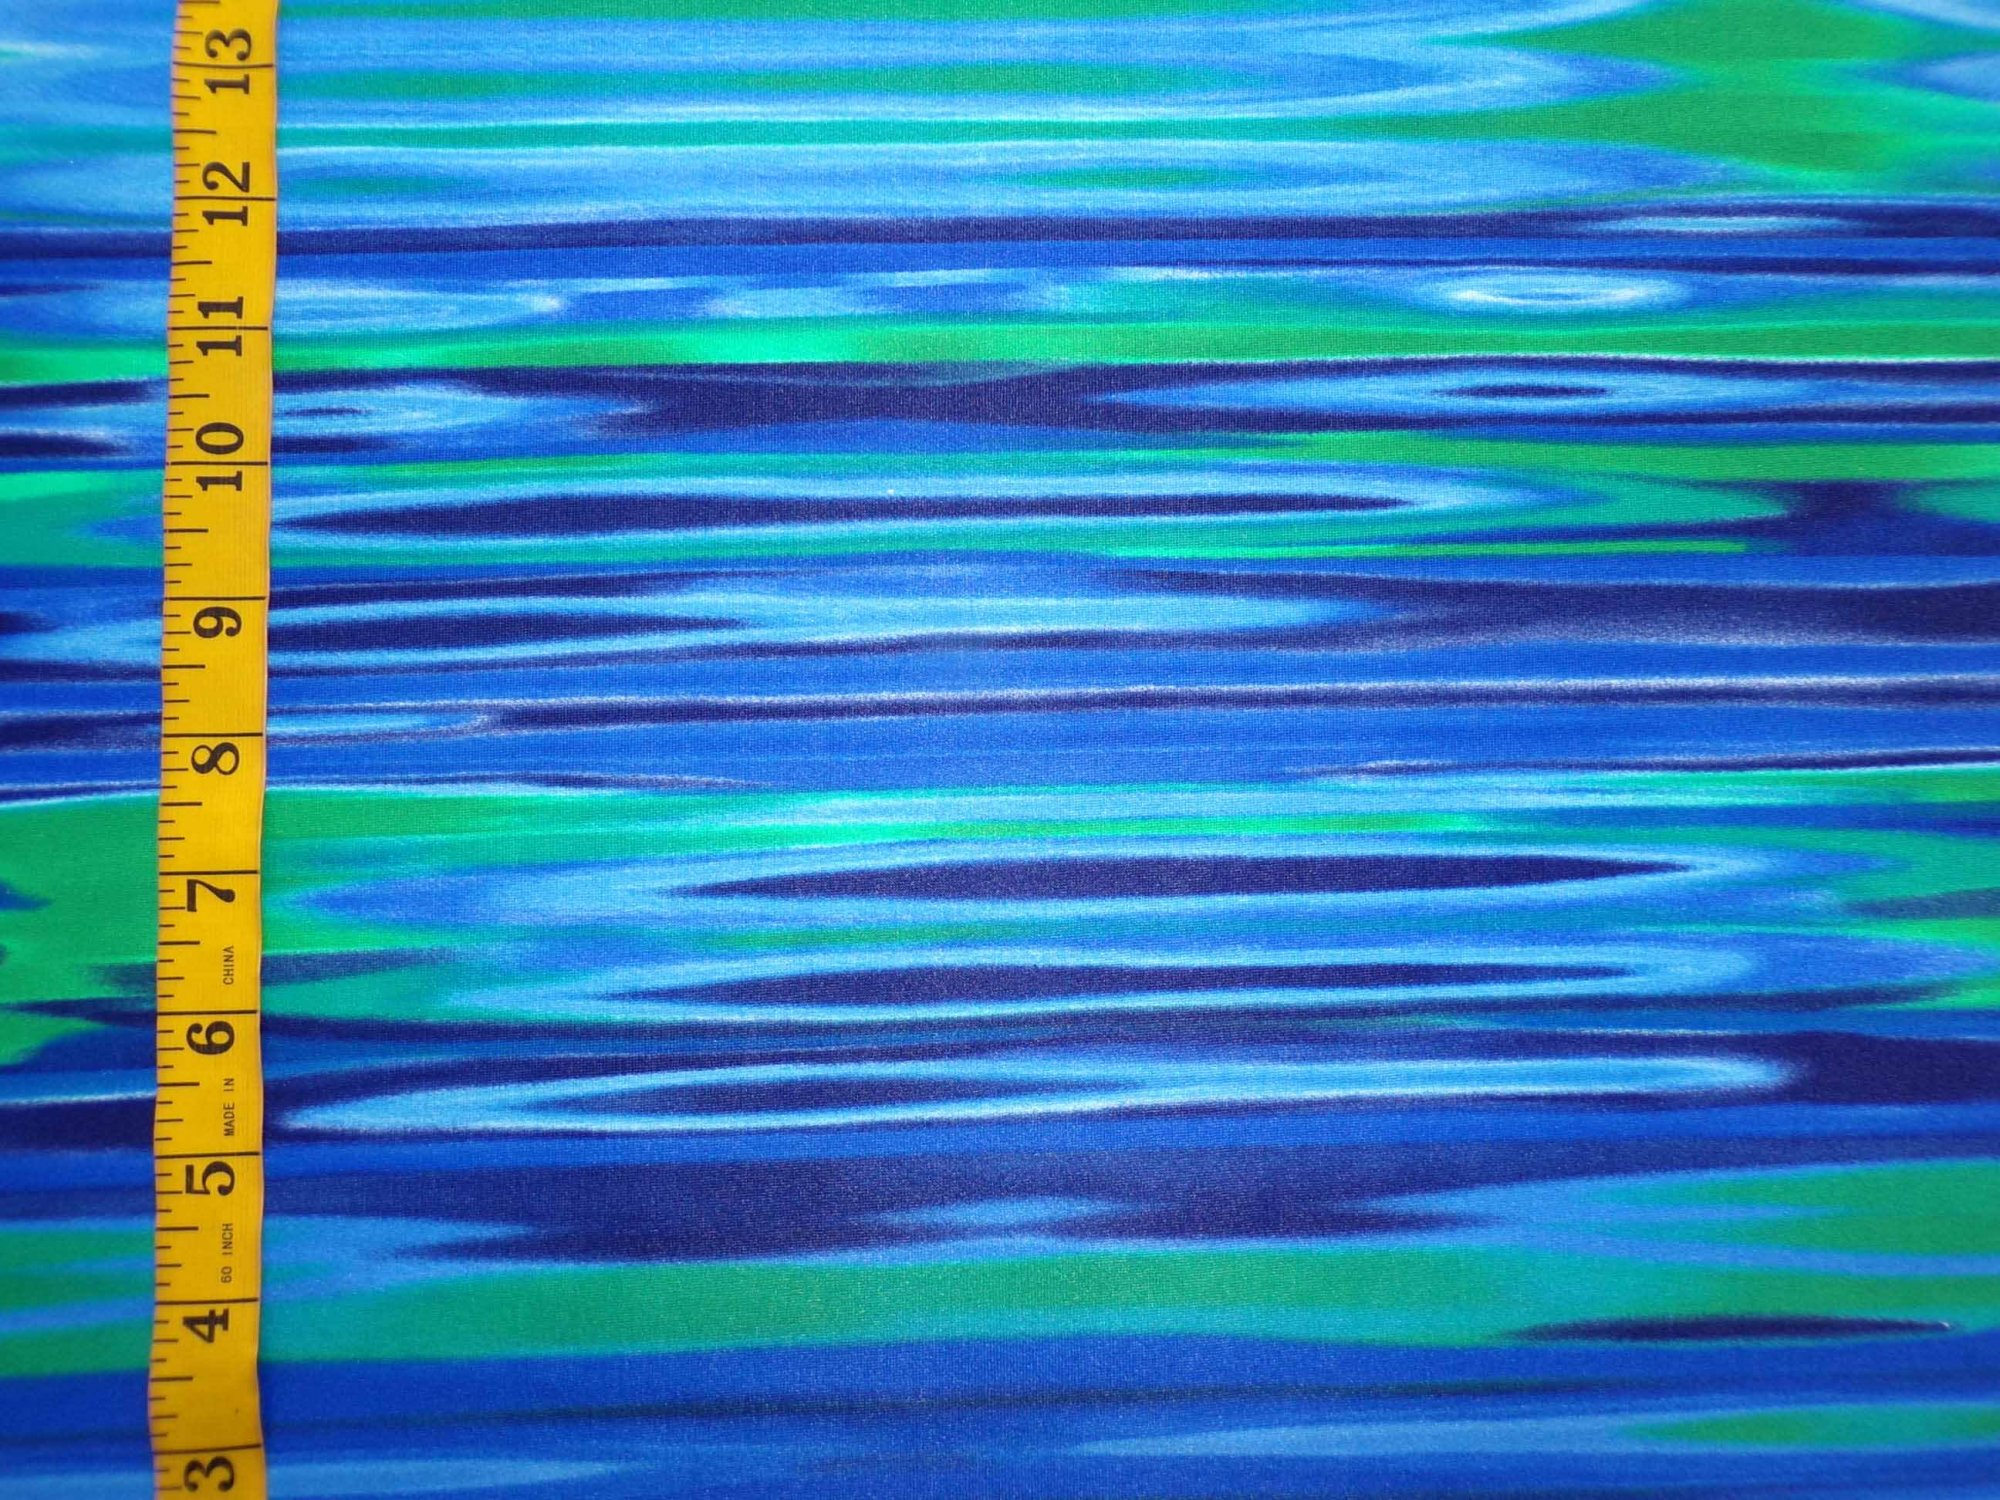 Swim/Activewear - Blue and Green Water Print